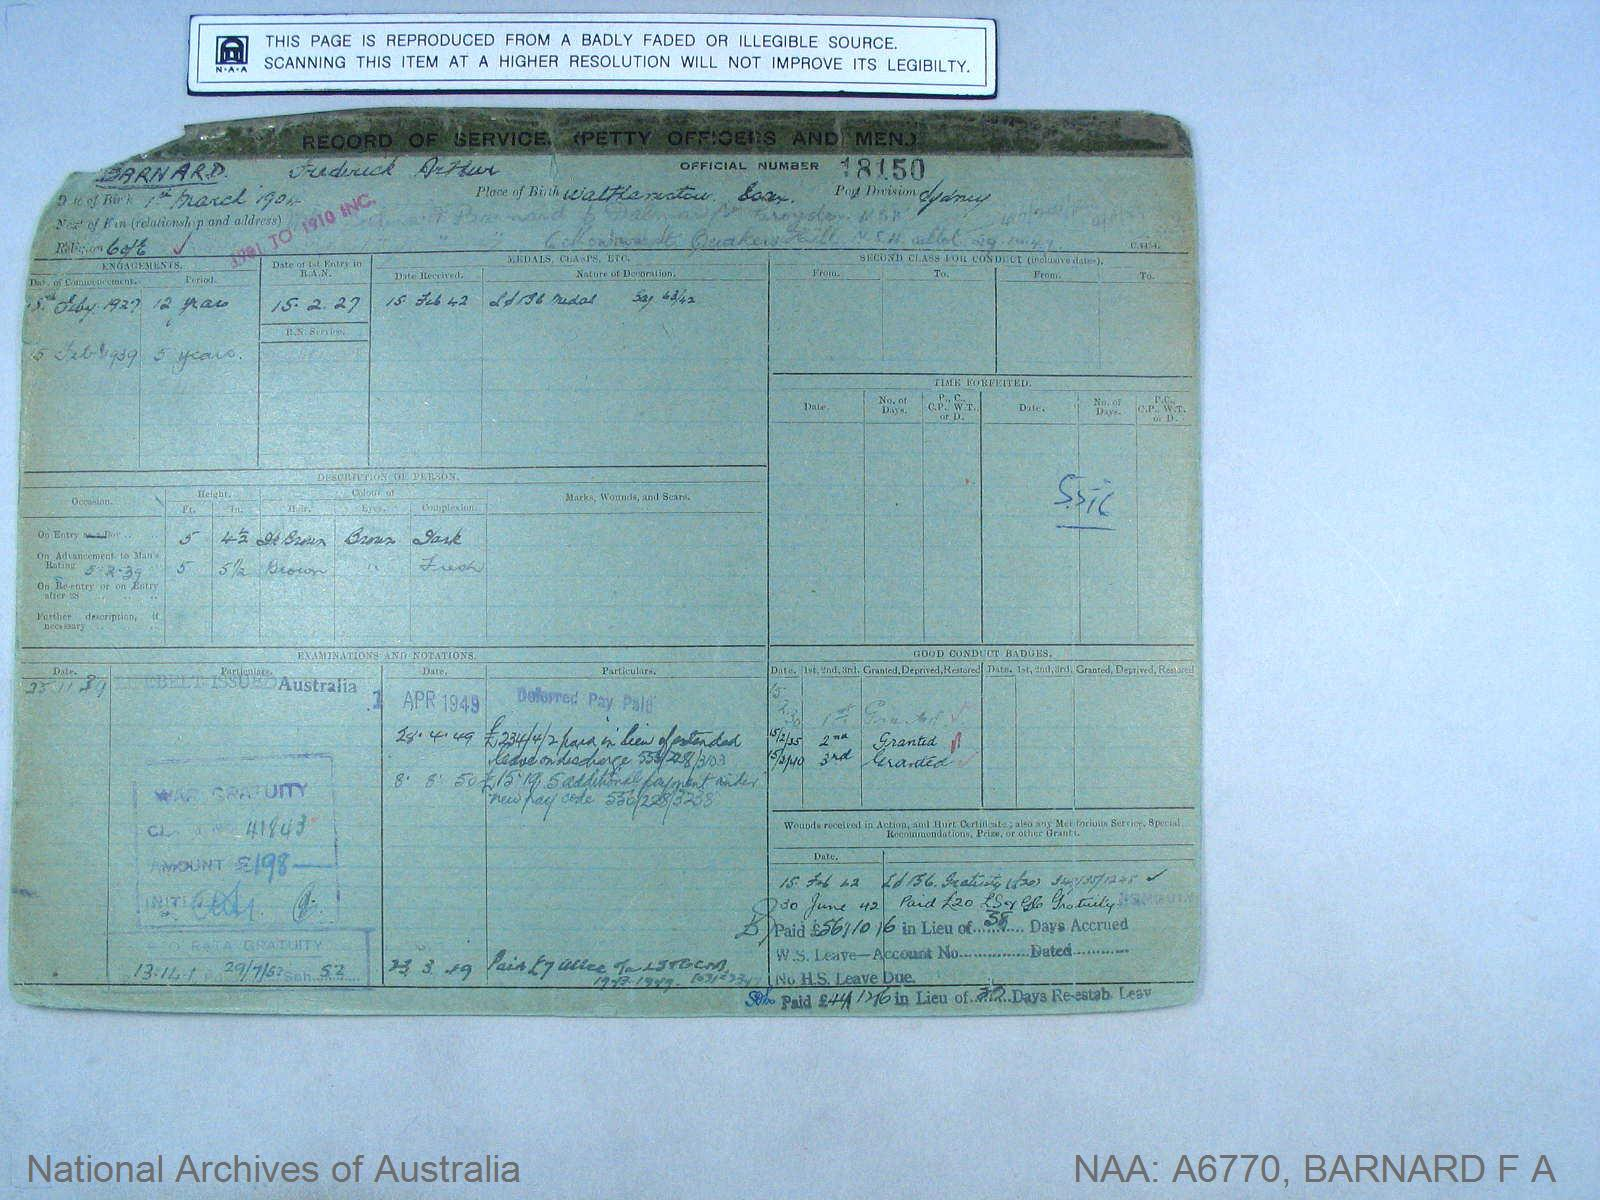 BARNARD FREDERICK ARTHUR : Service Number - 18150 : Date of birth - 01 Mar 1904 : Place of birth - WALTHEMSTOW ESSEX : Place of enlistment - SYDNEY : Next of Kin - BARNARD SELINA